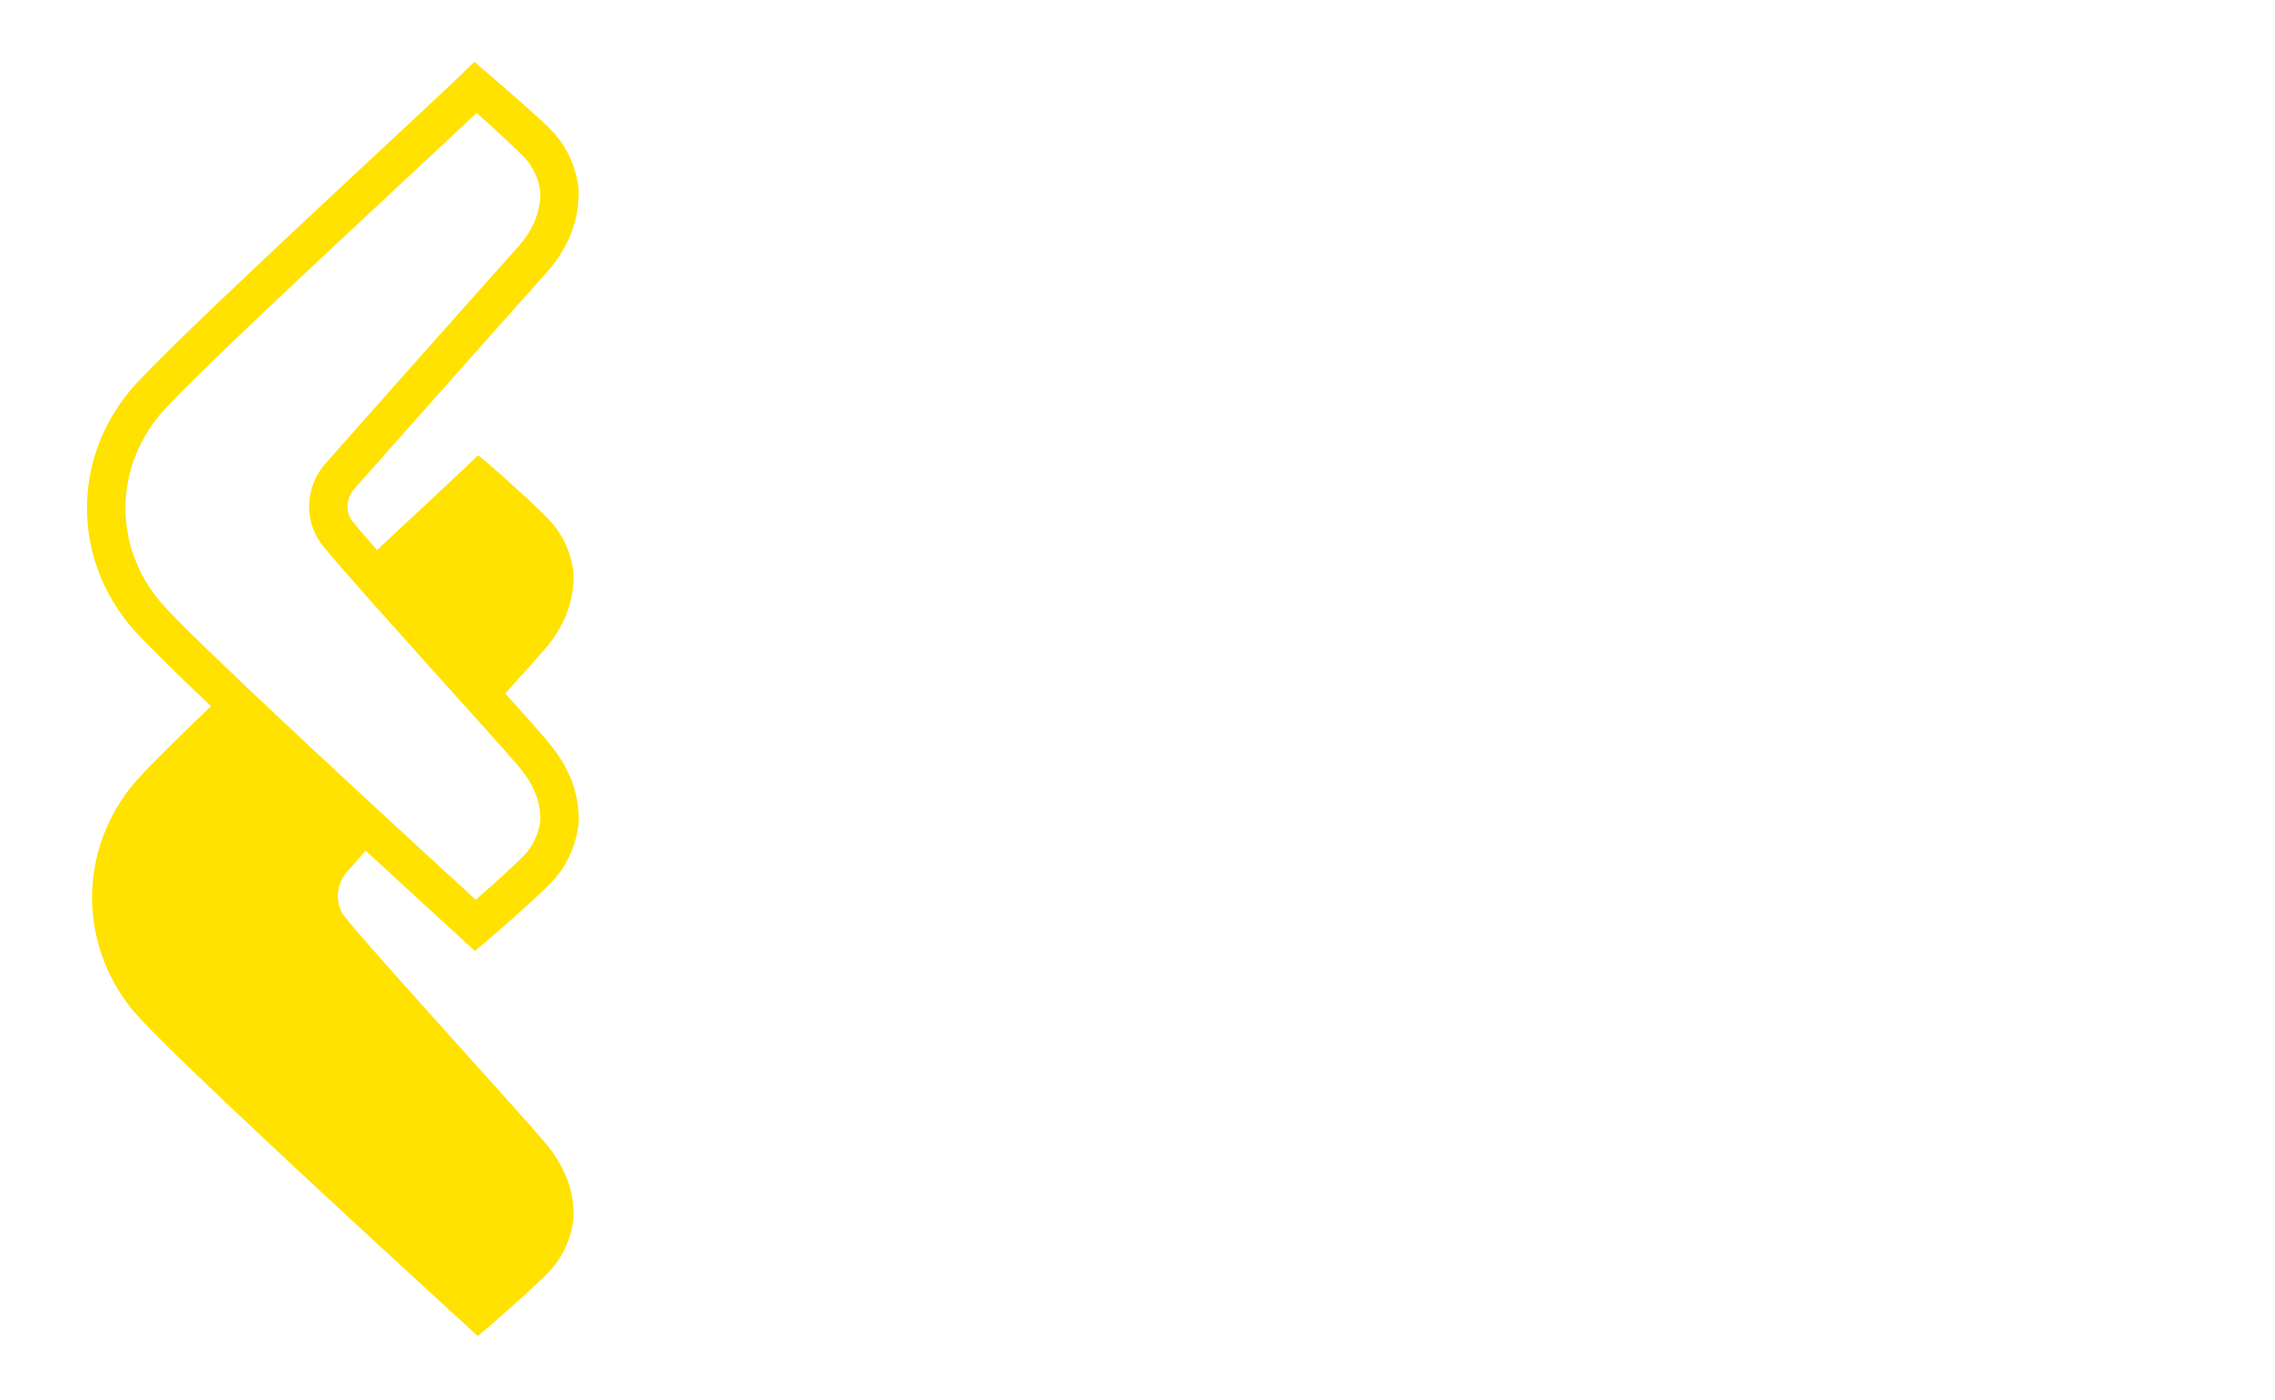 Carrefour formation Mauricie